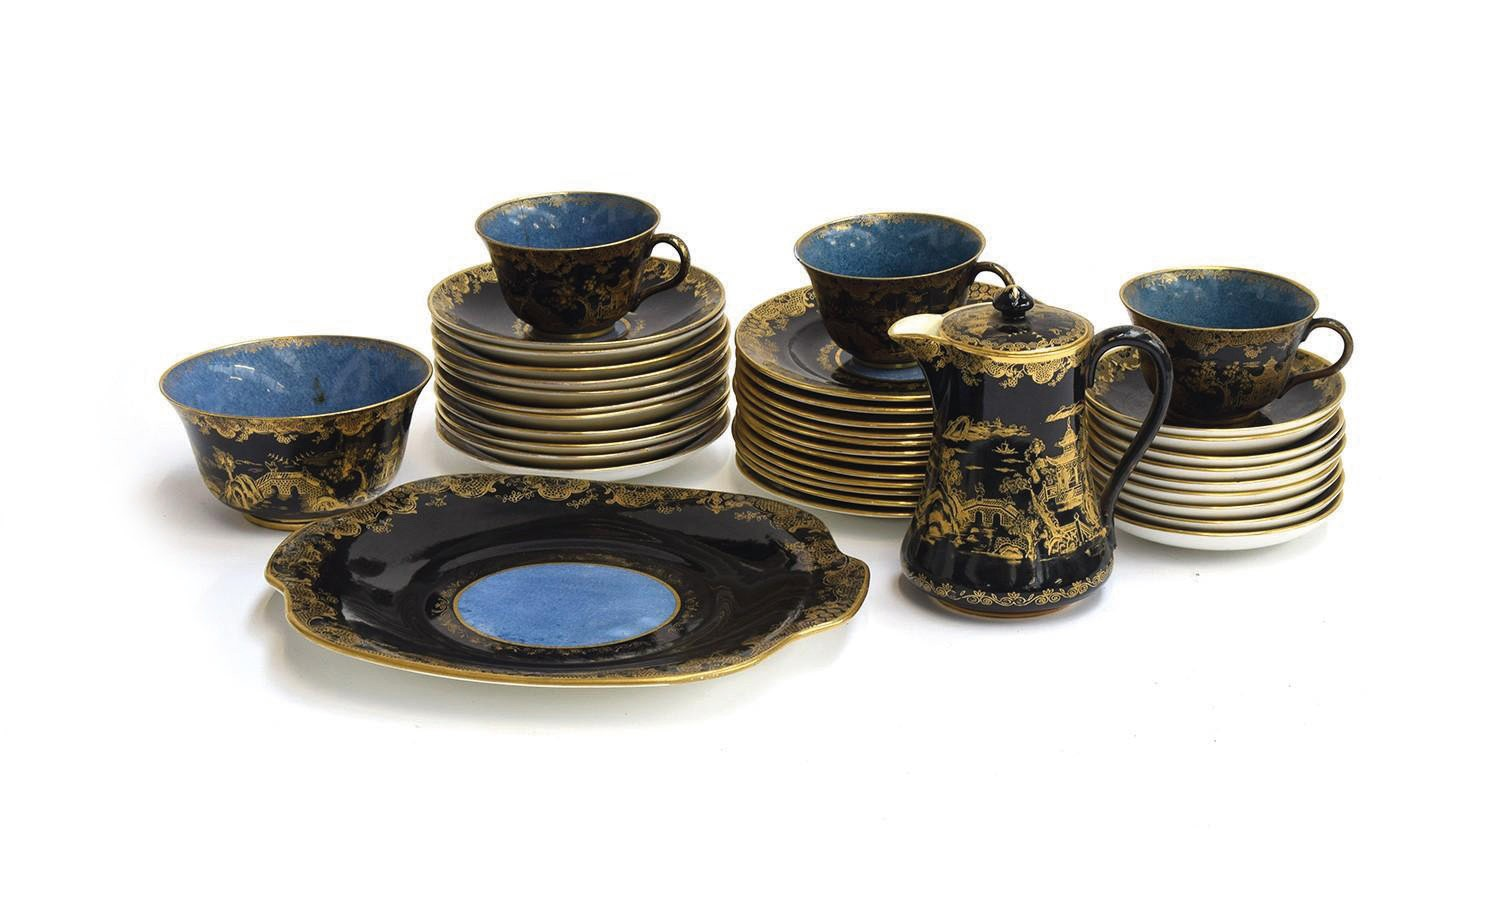 An early 20th century Crown Staffordshire 38 piece part tea service, black and cobalt blue